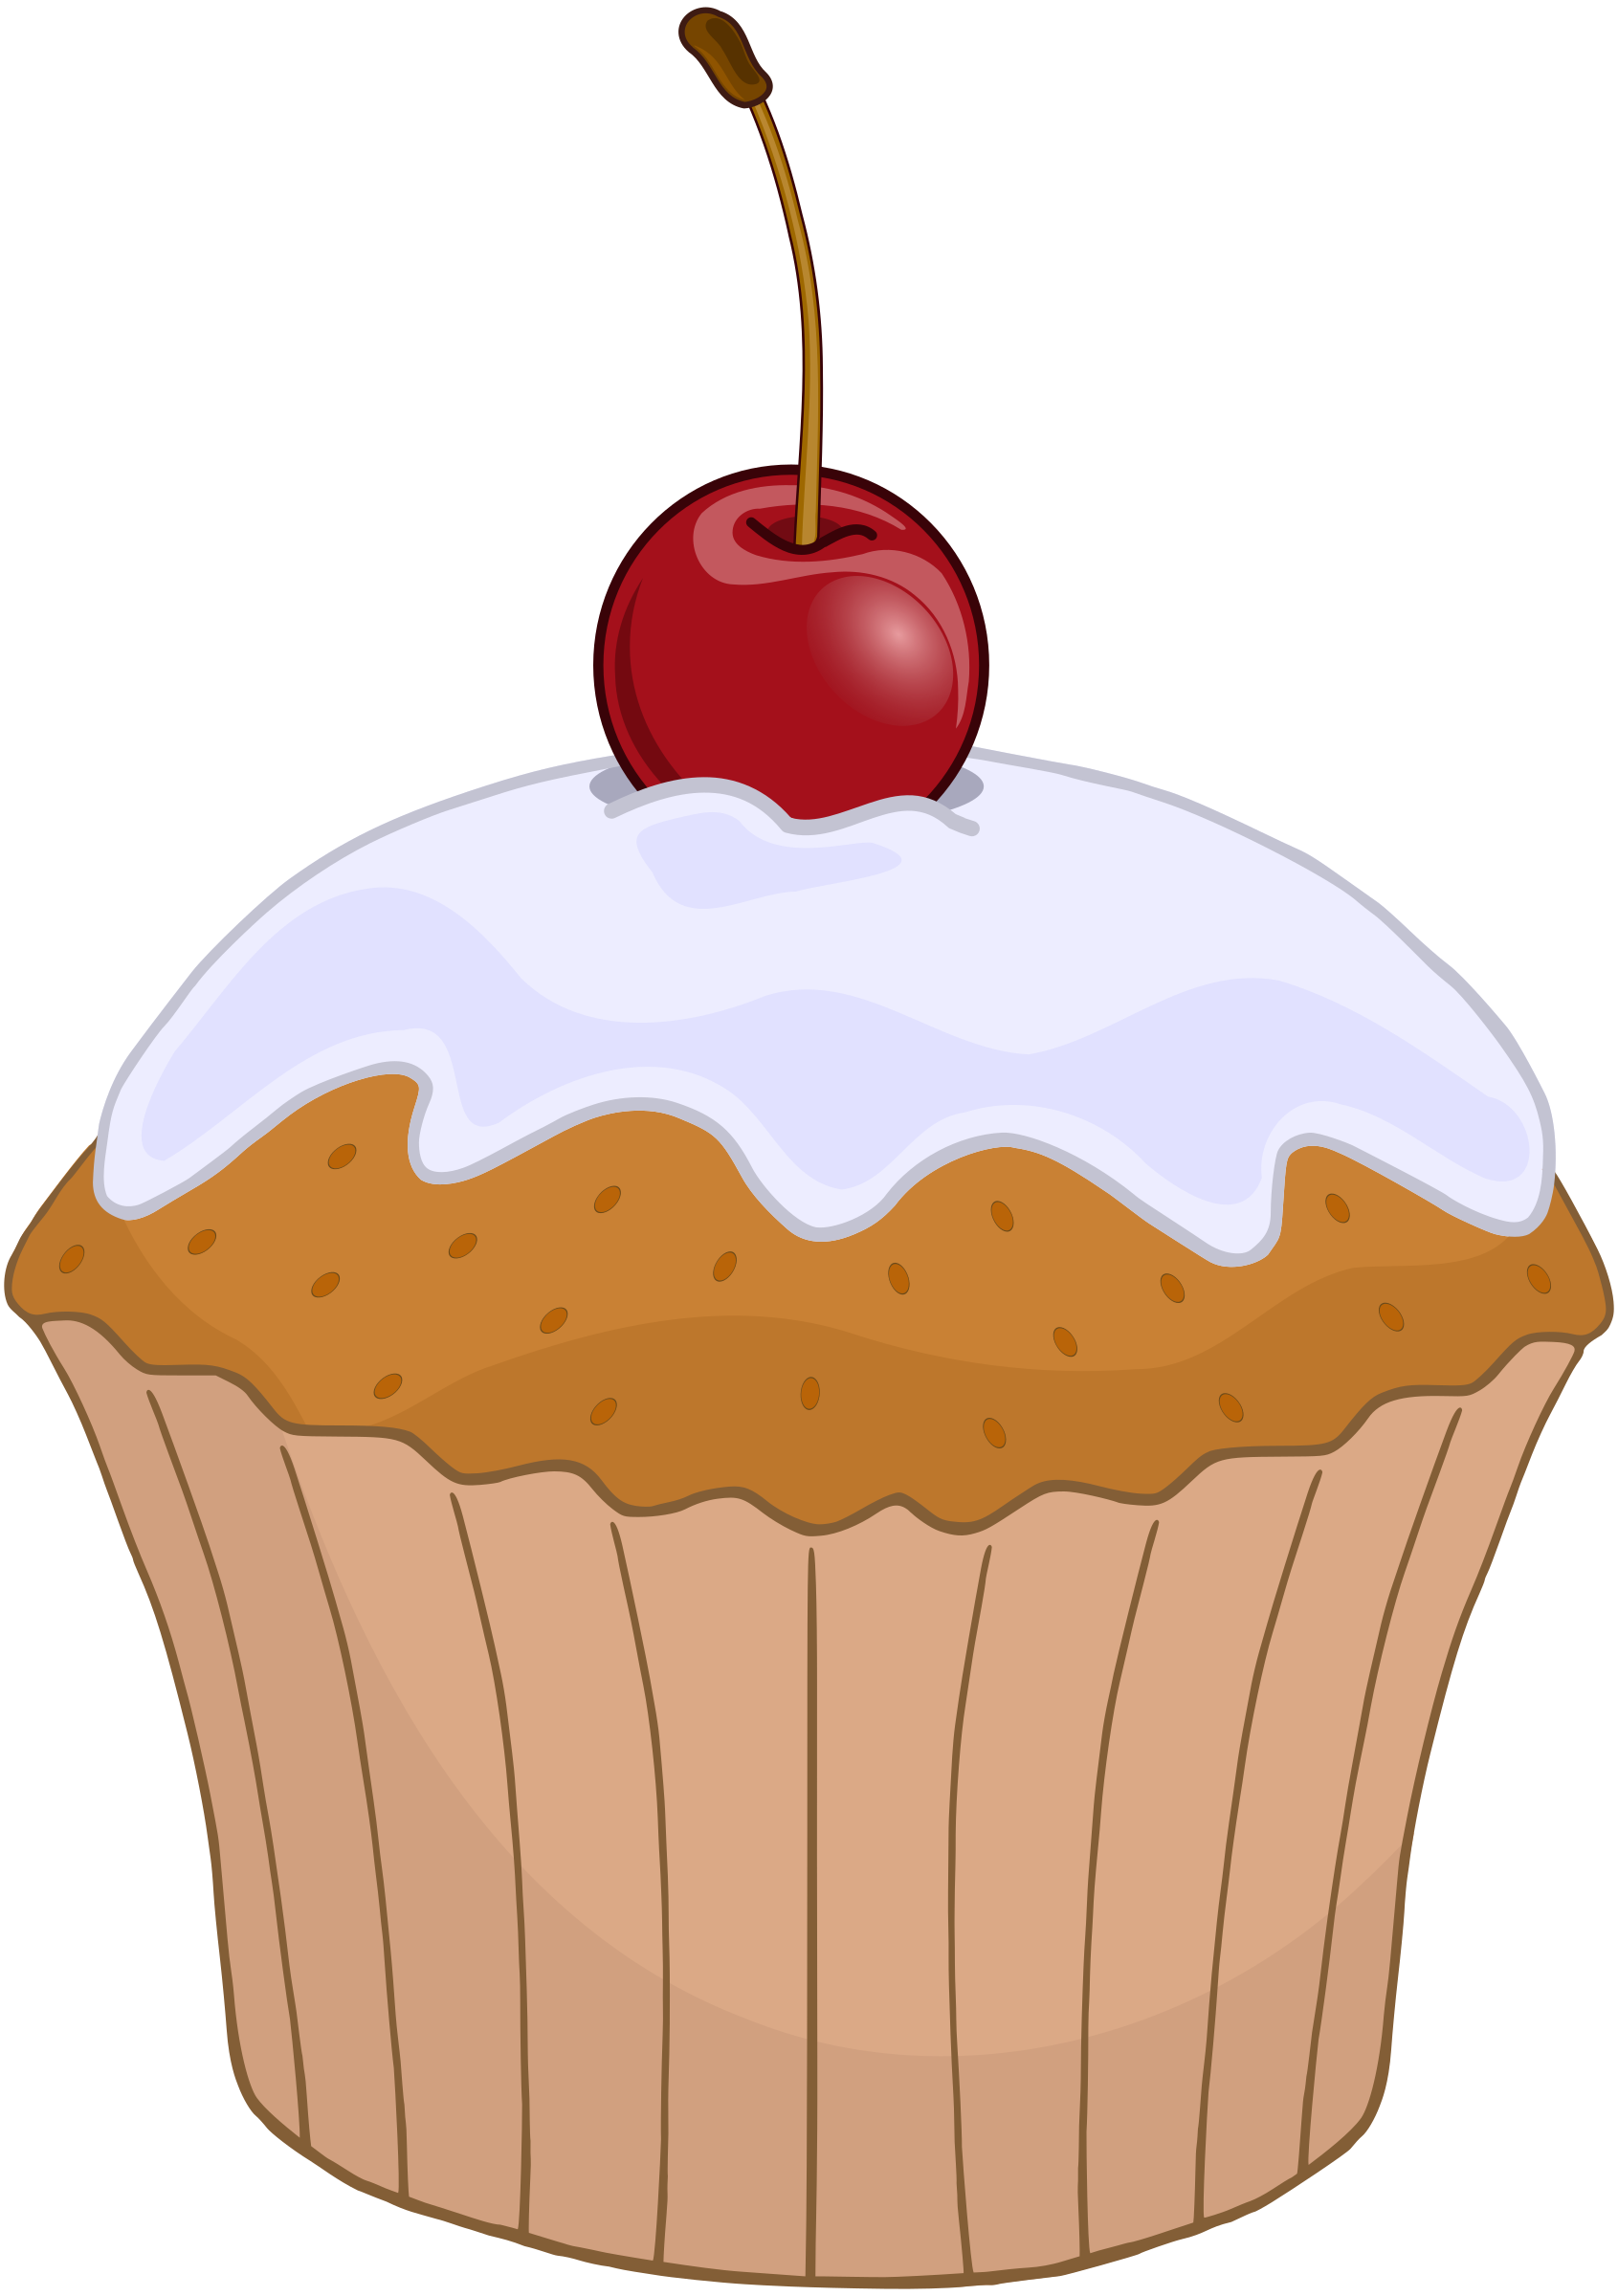 Muffins clipart animated. Muffin big image png